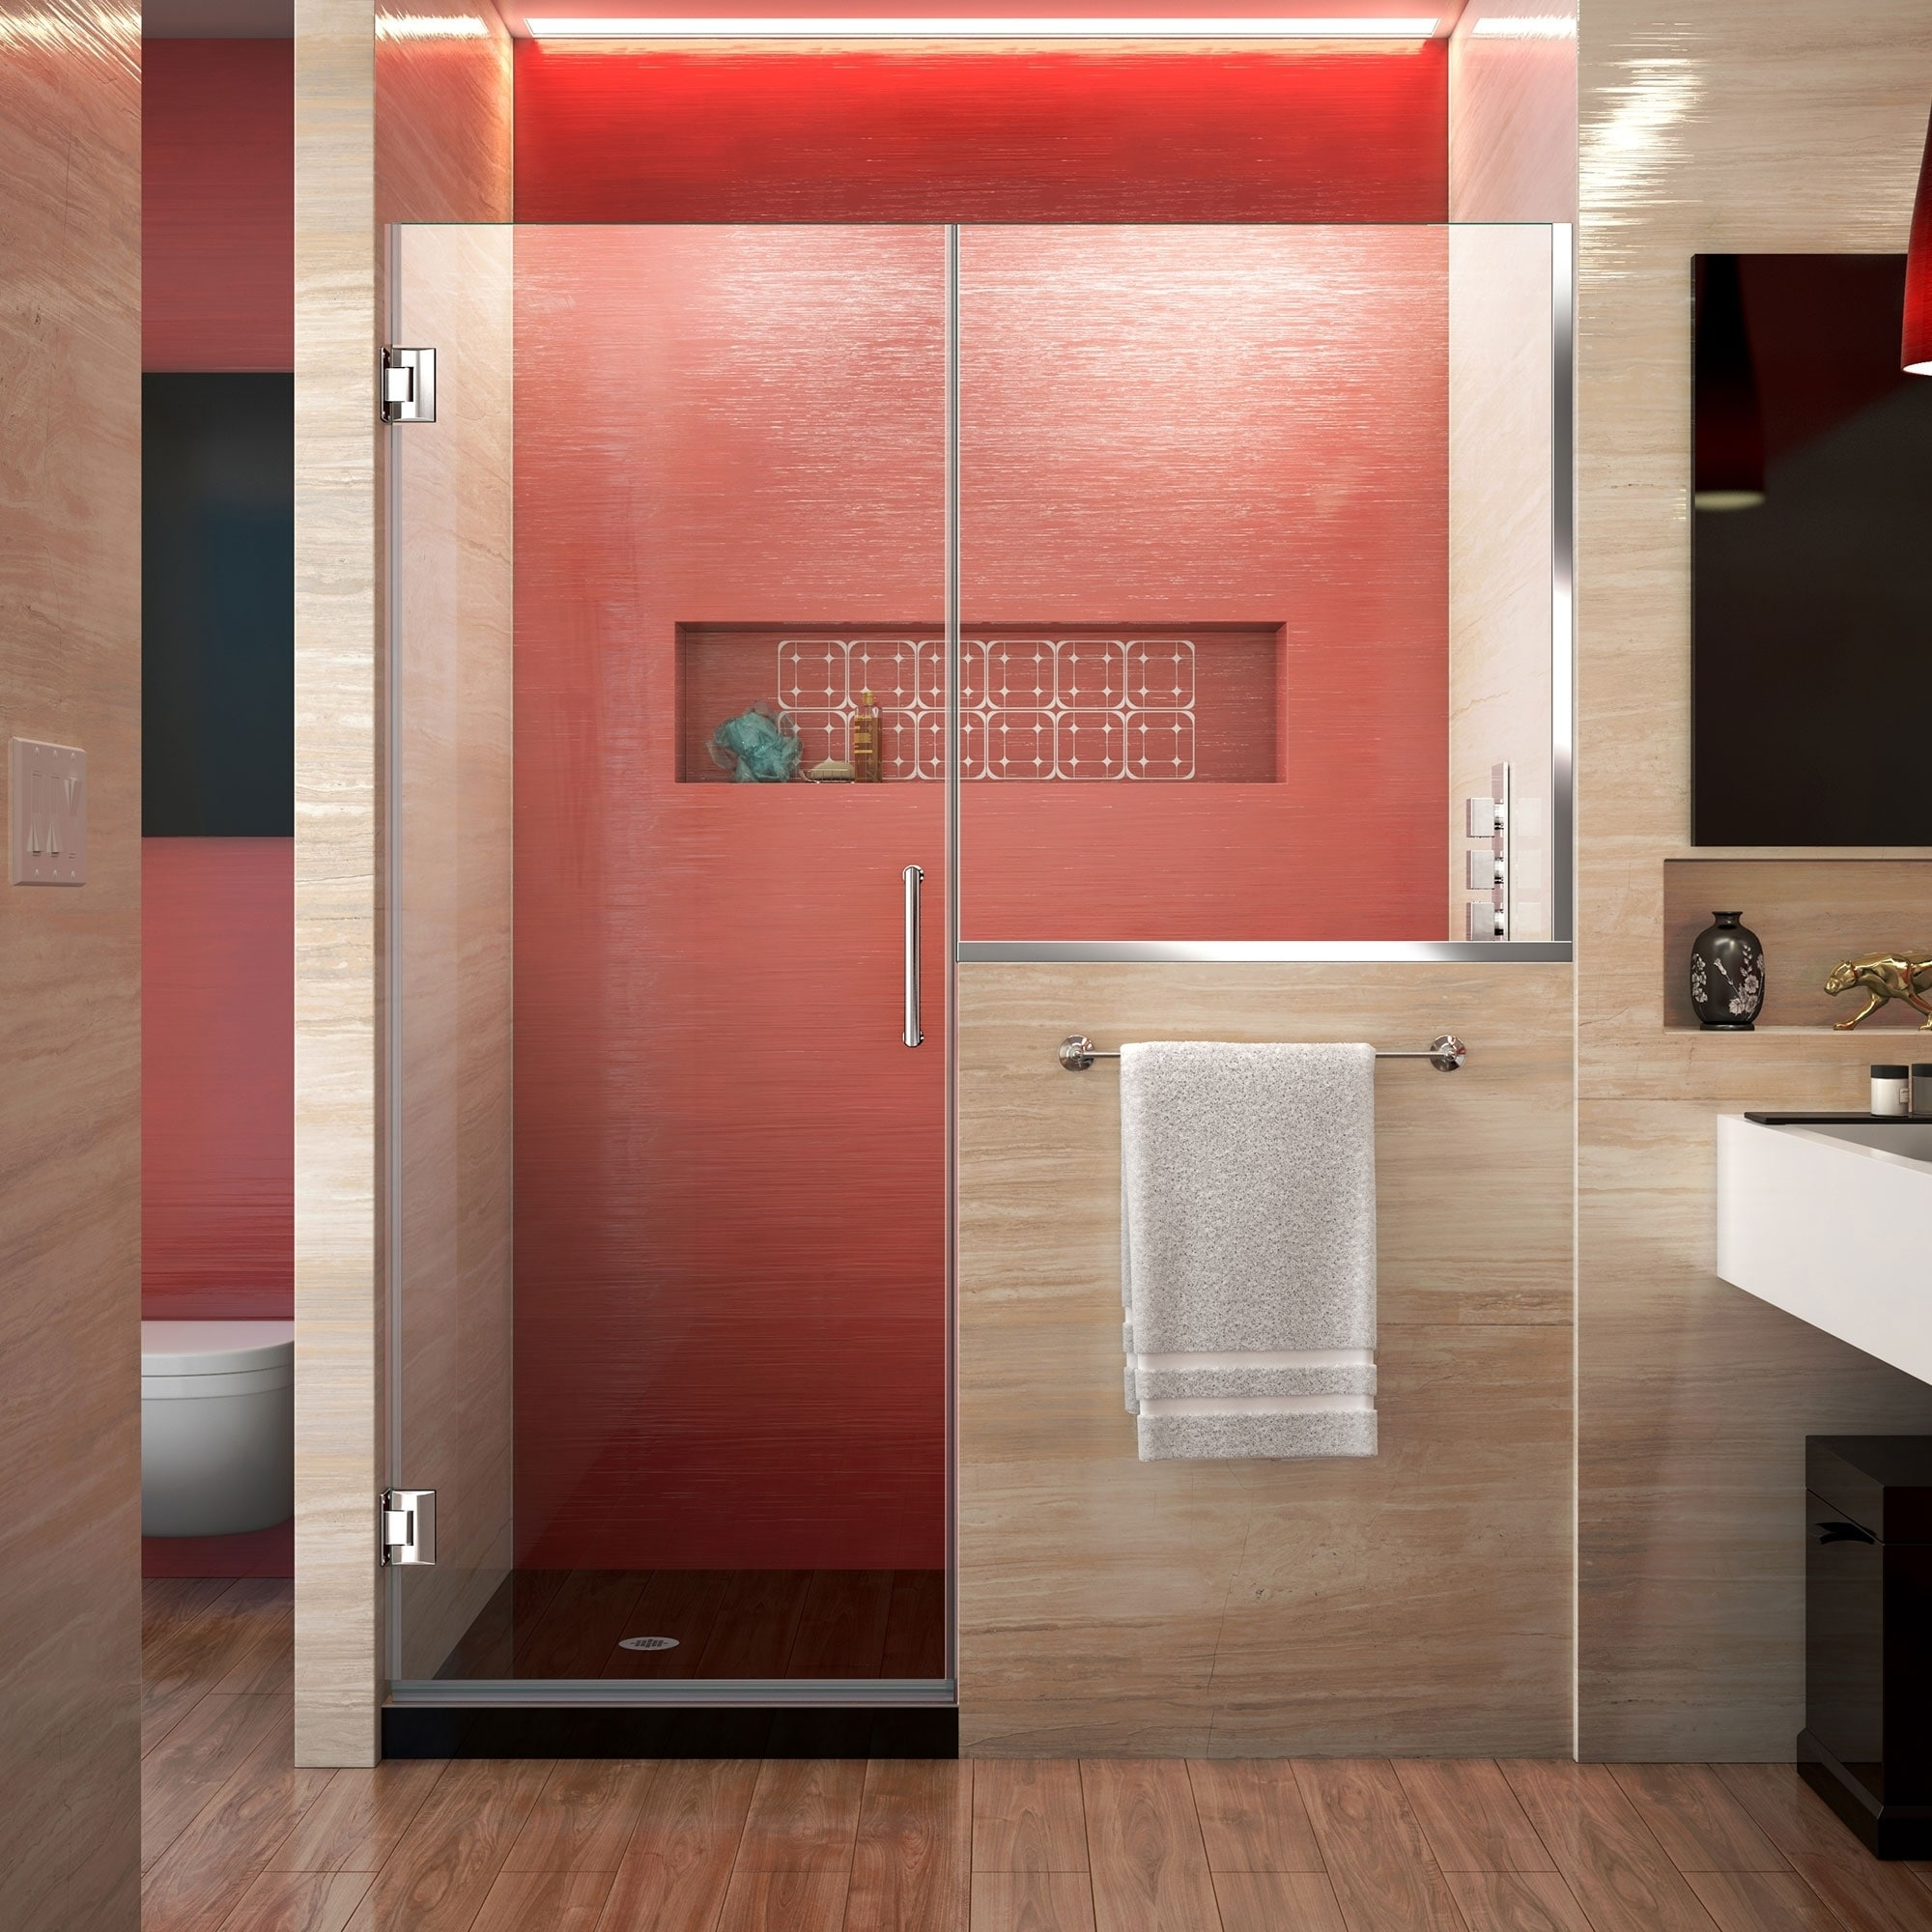 Buy Shower Stalls & Kits Online at Overstock.com | Our Best Showers ...